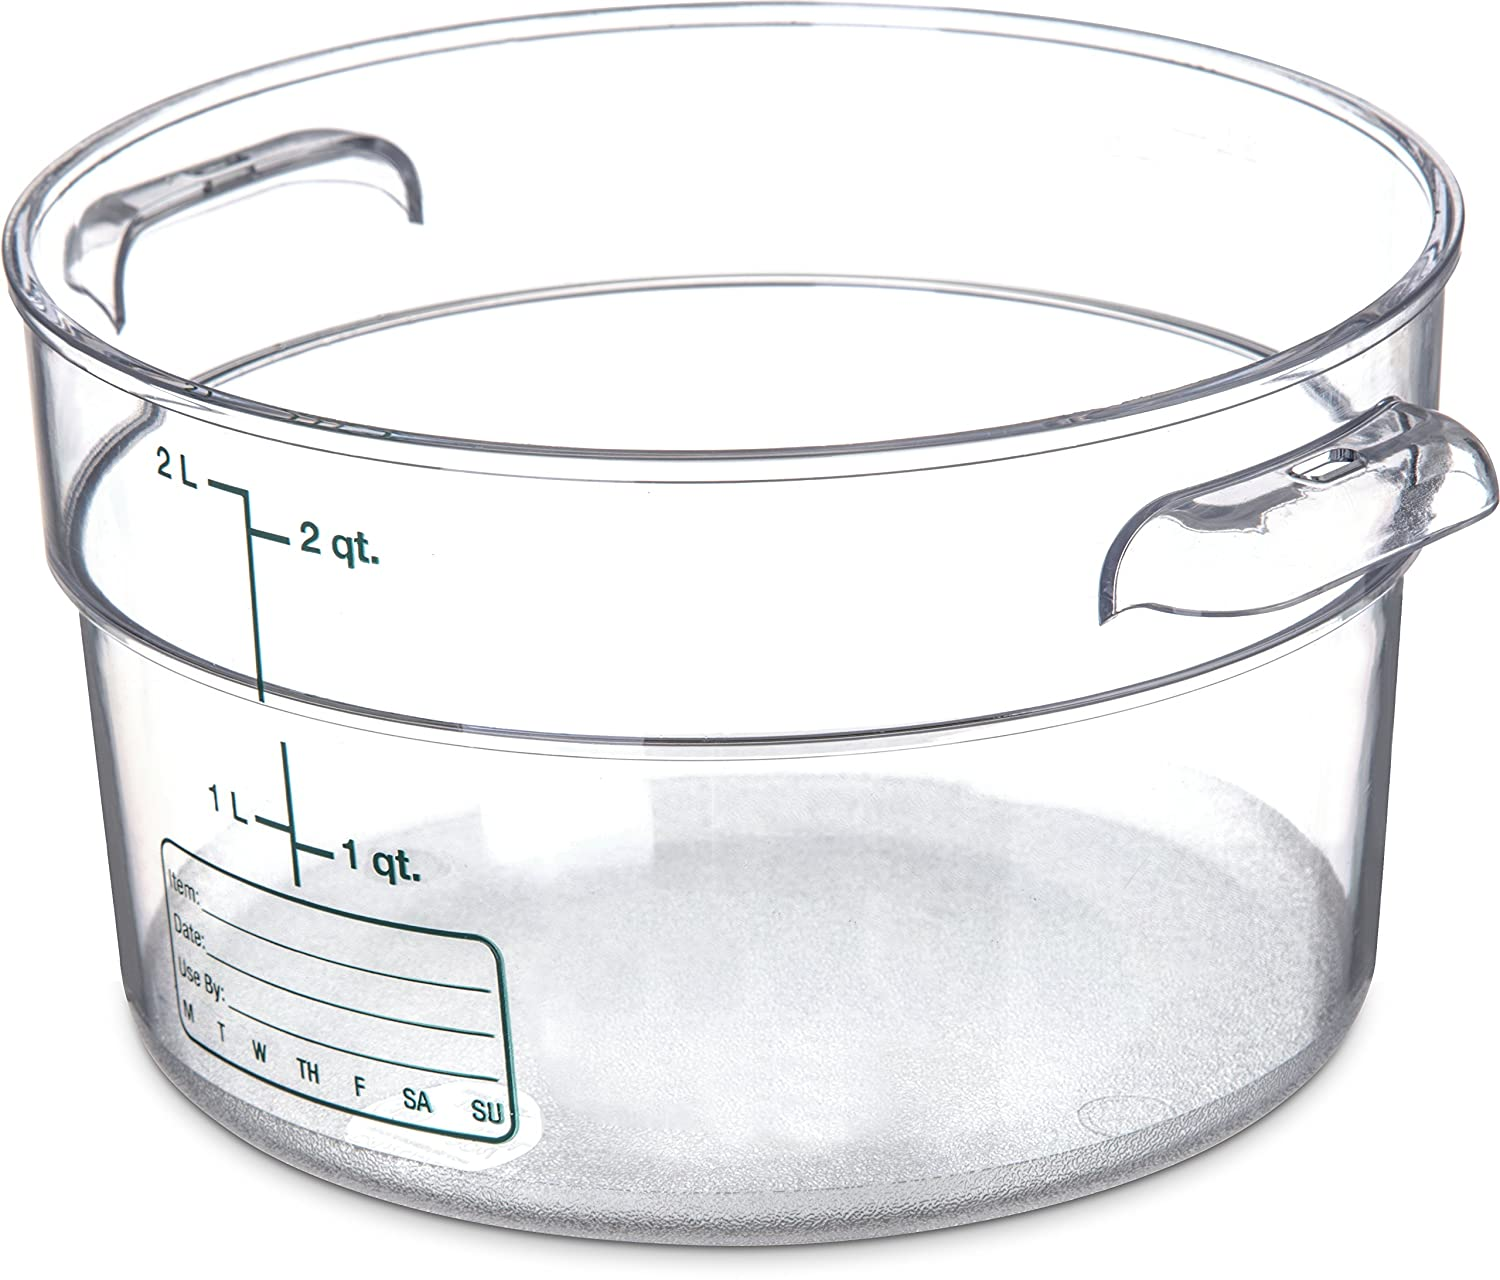 Carlisle 1076307 StorPlus Polycarbonate Round Food Storage Container, 2 Quart, Clear